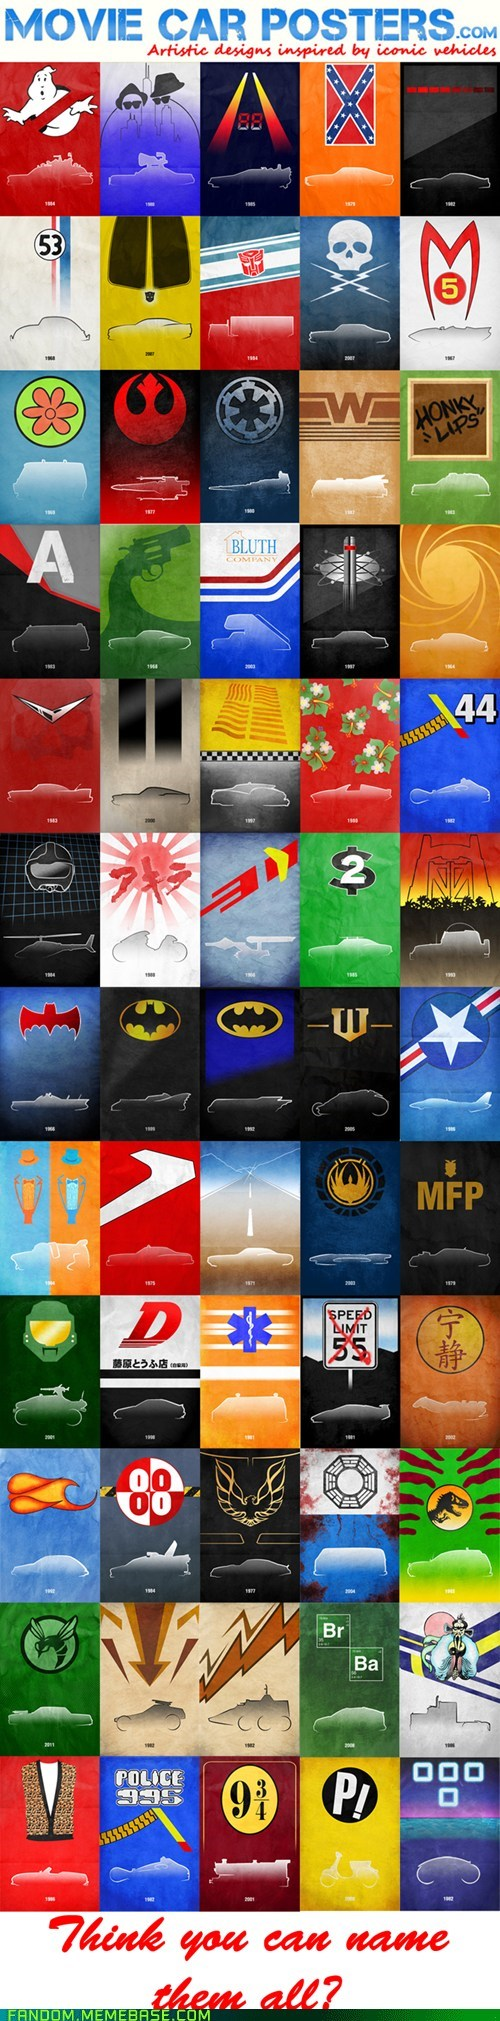 best of week cars Fan Art movies posters - 6244268288